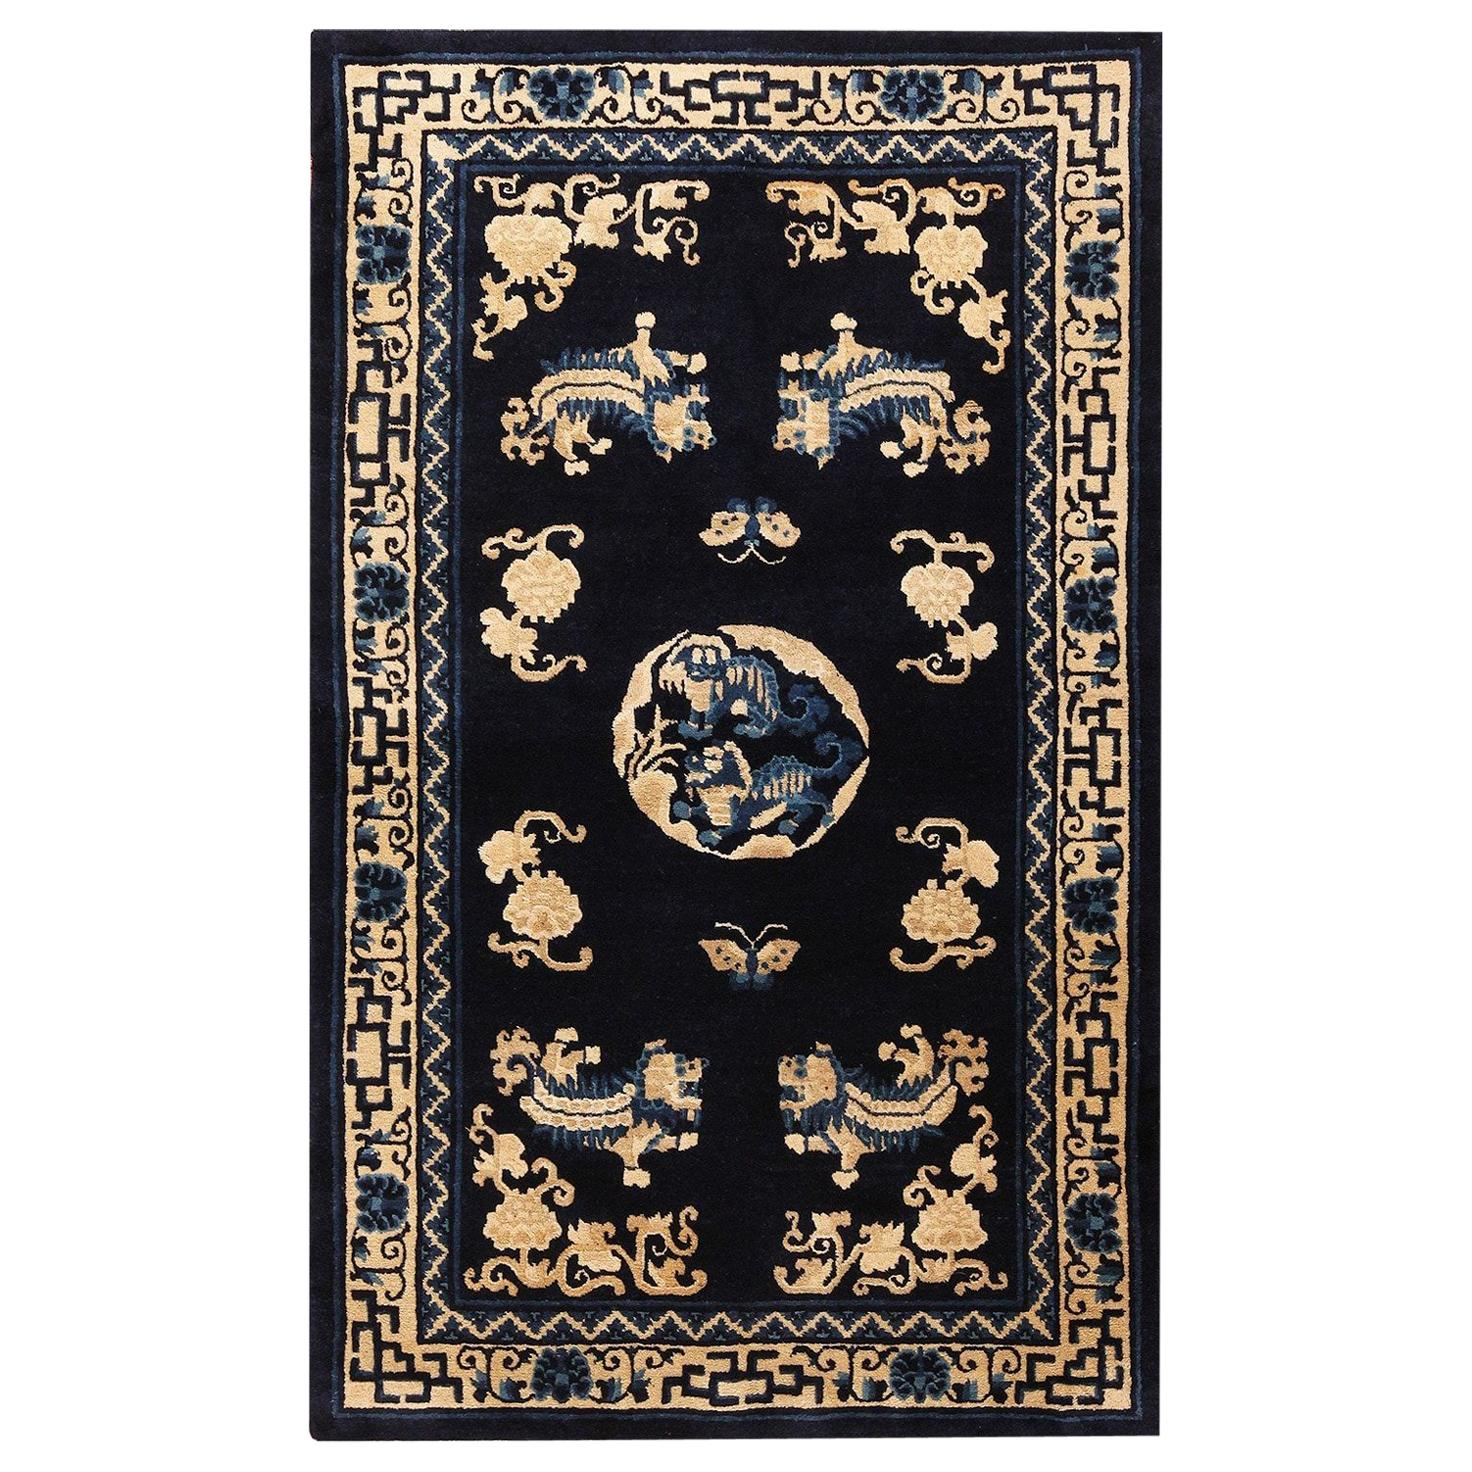 Antique And Modern Rugs And Carpets 33 407 For Sale At 1stdibs